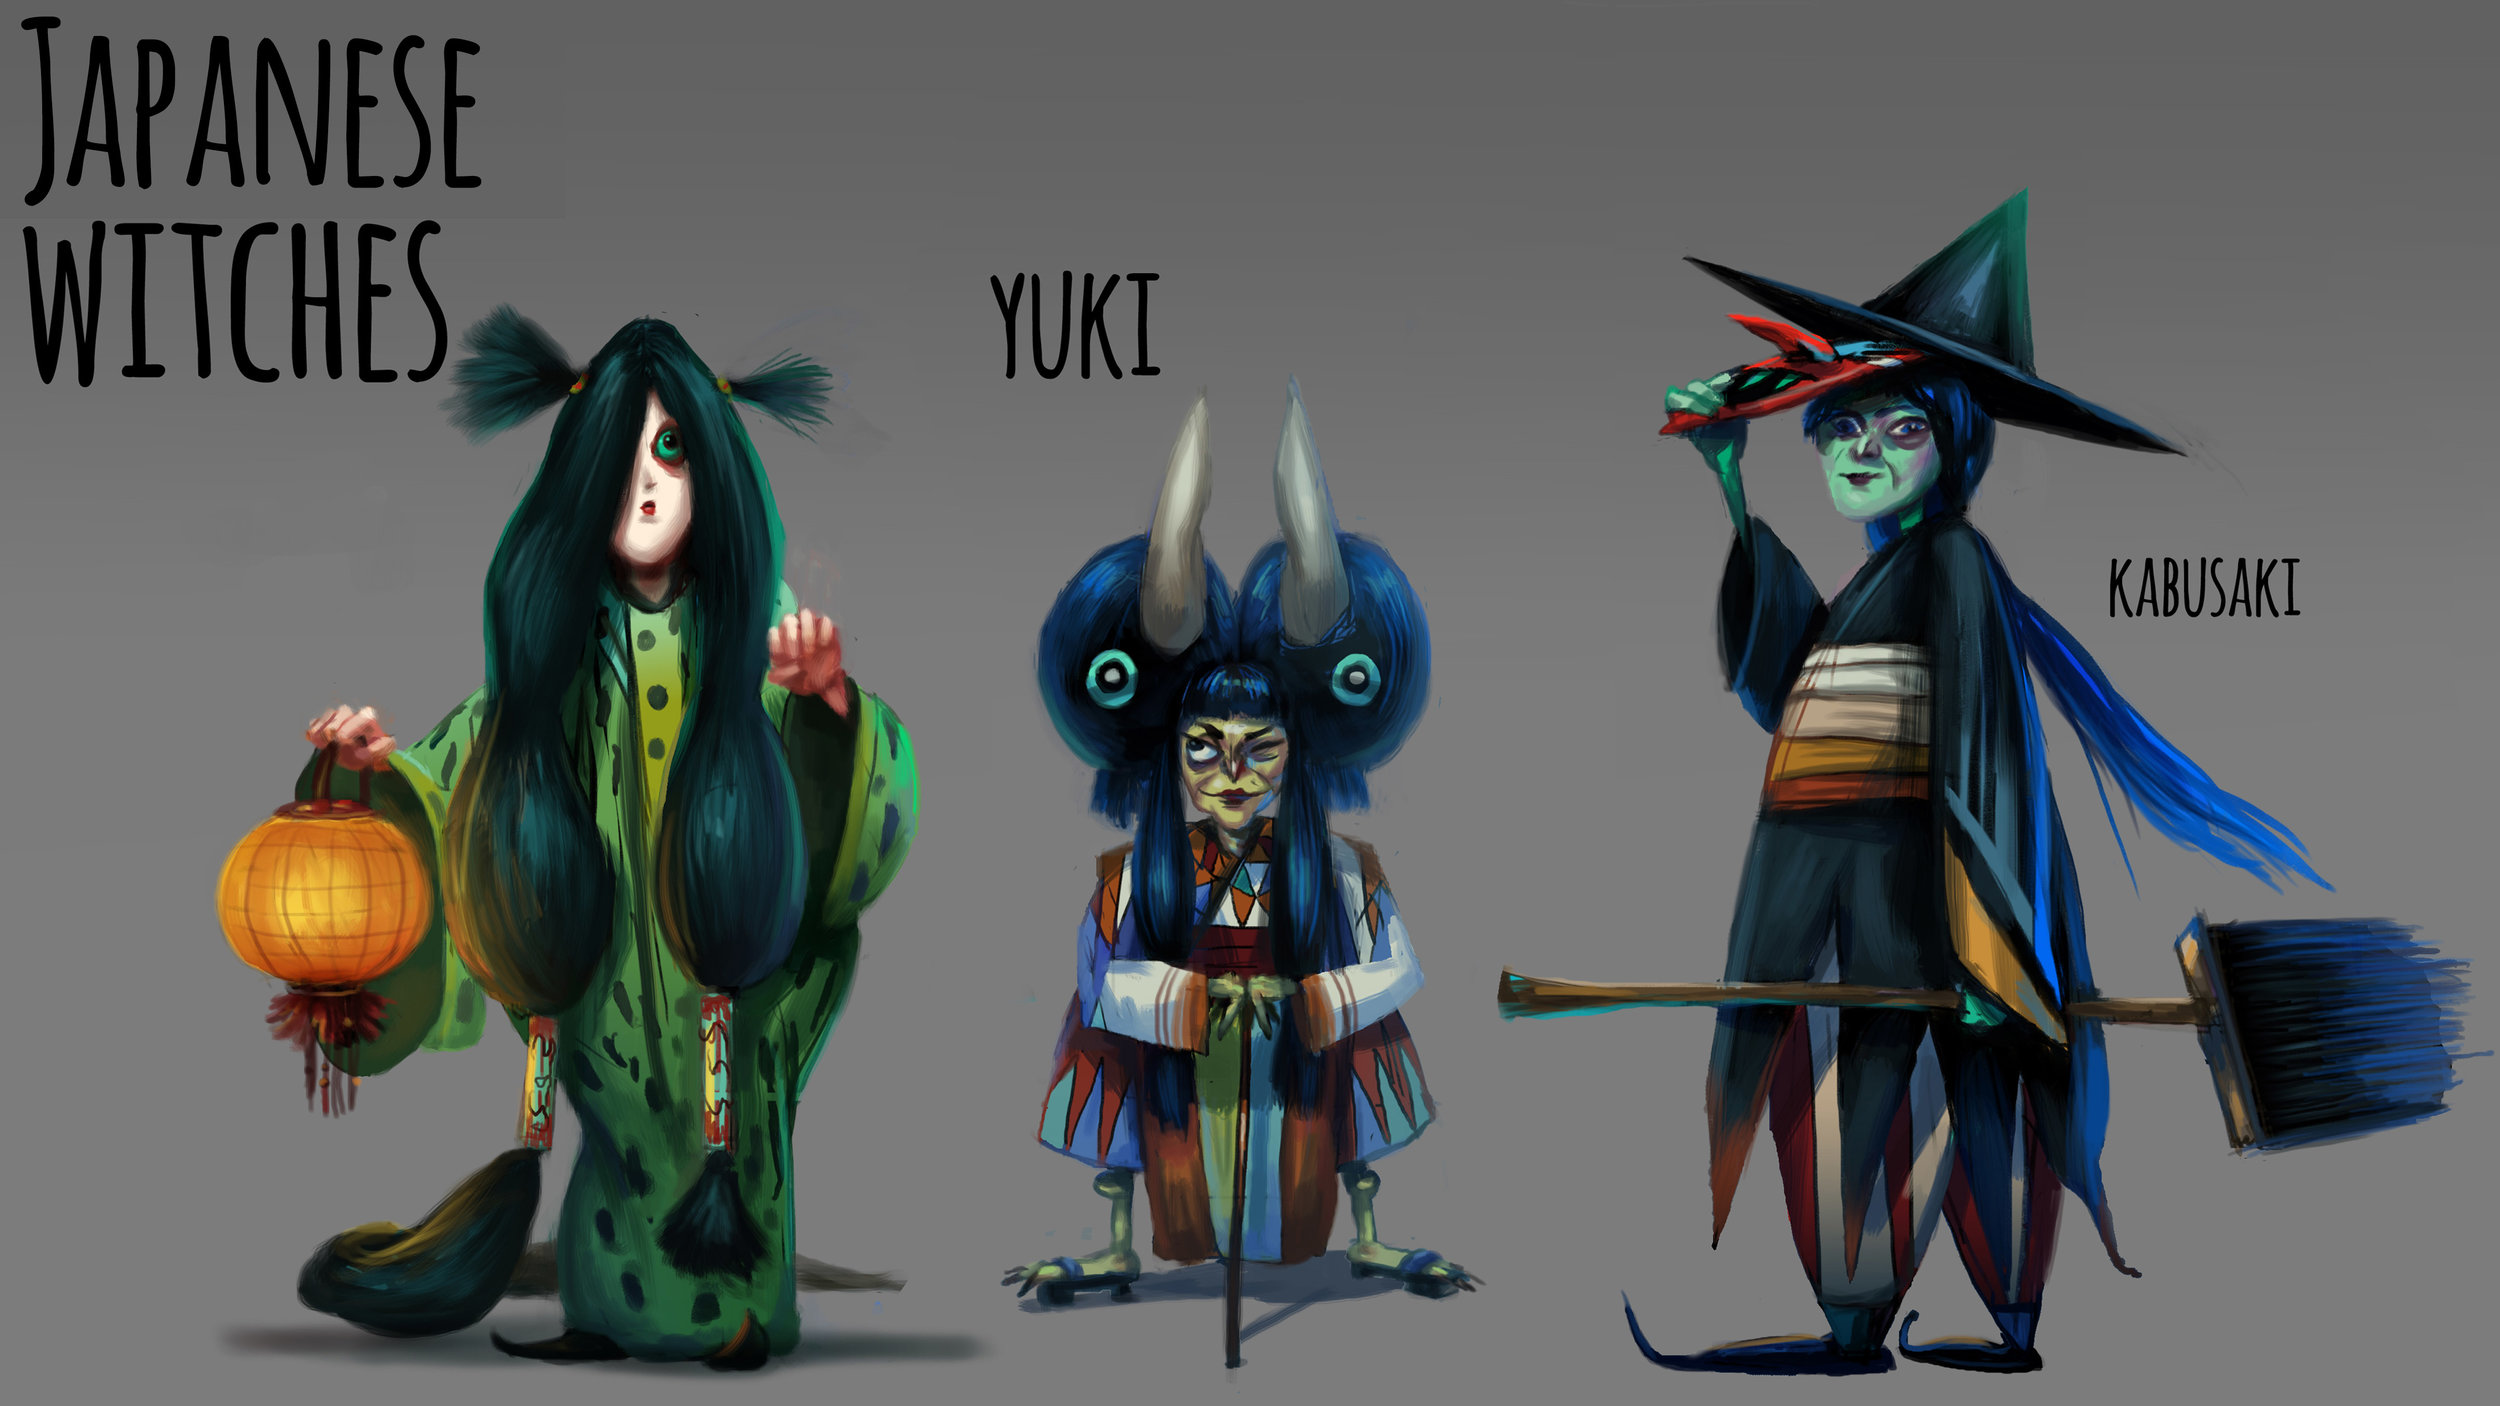 japanese witches.jpg